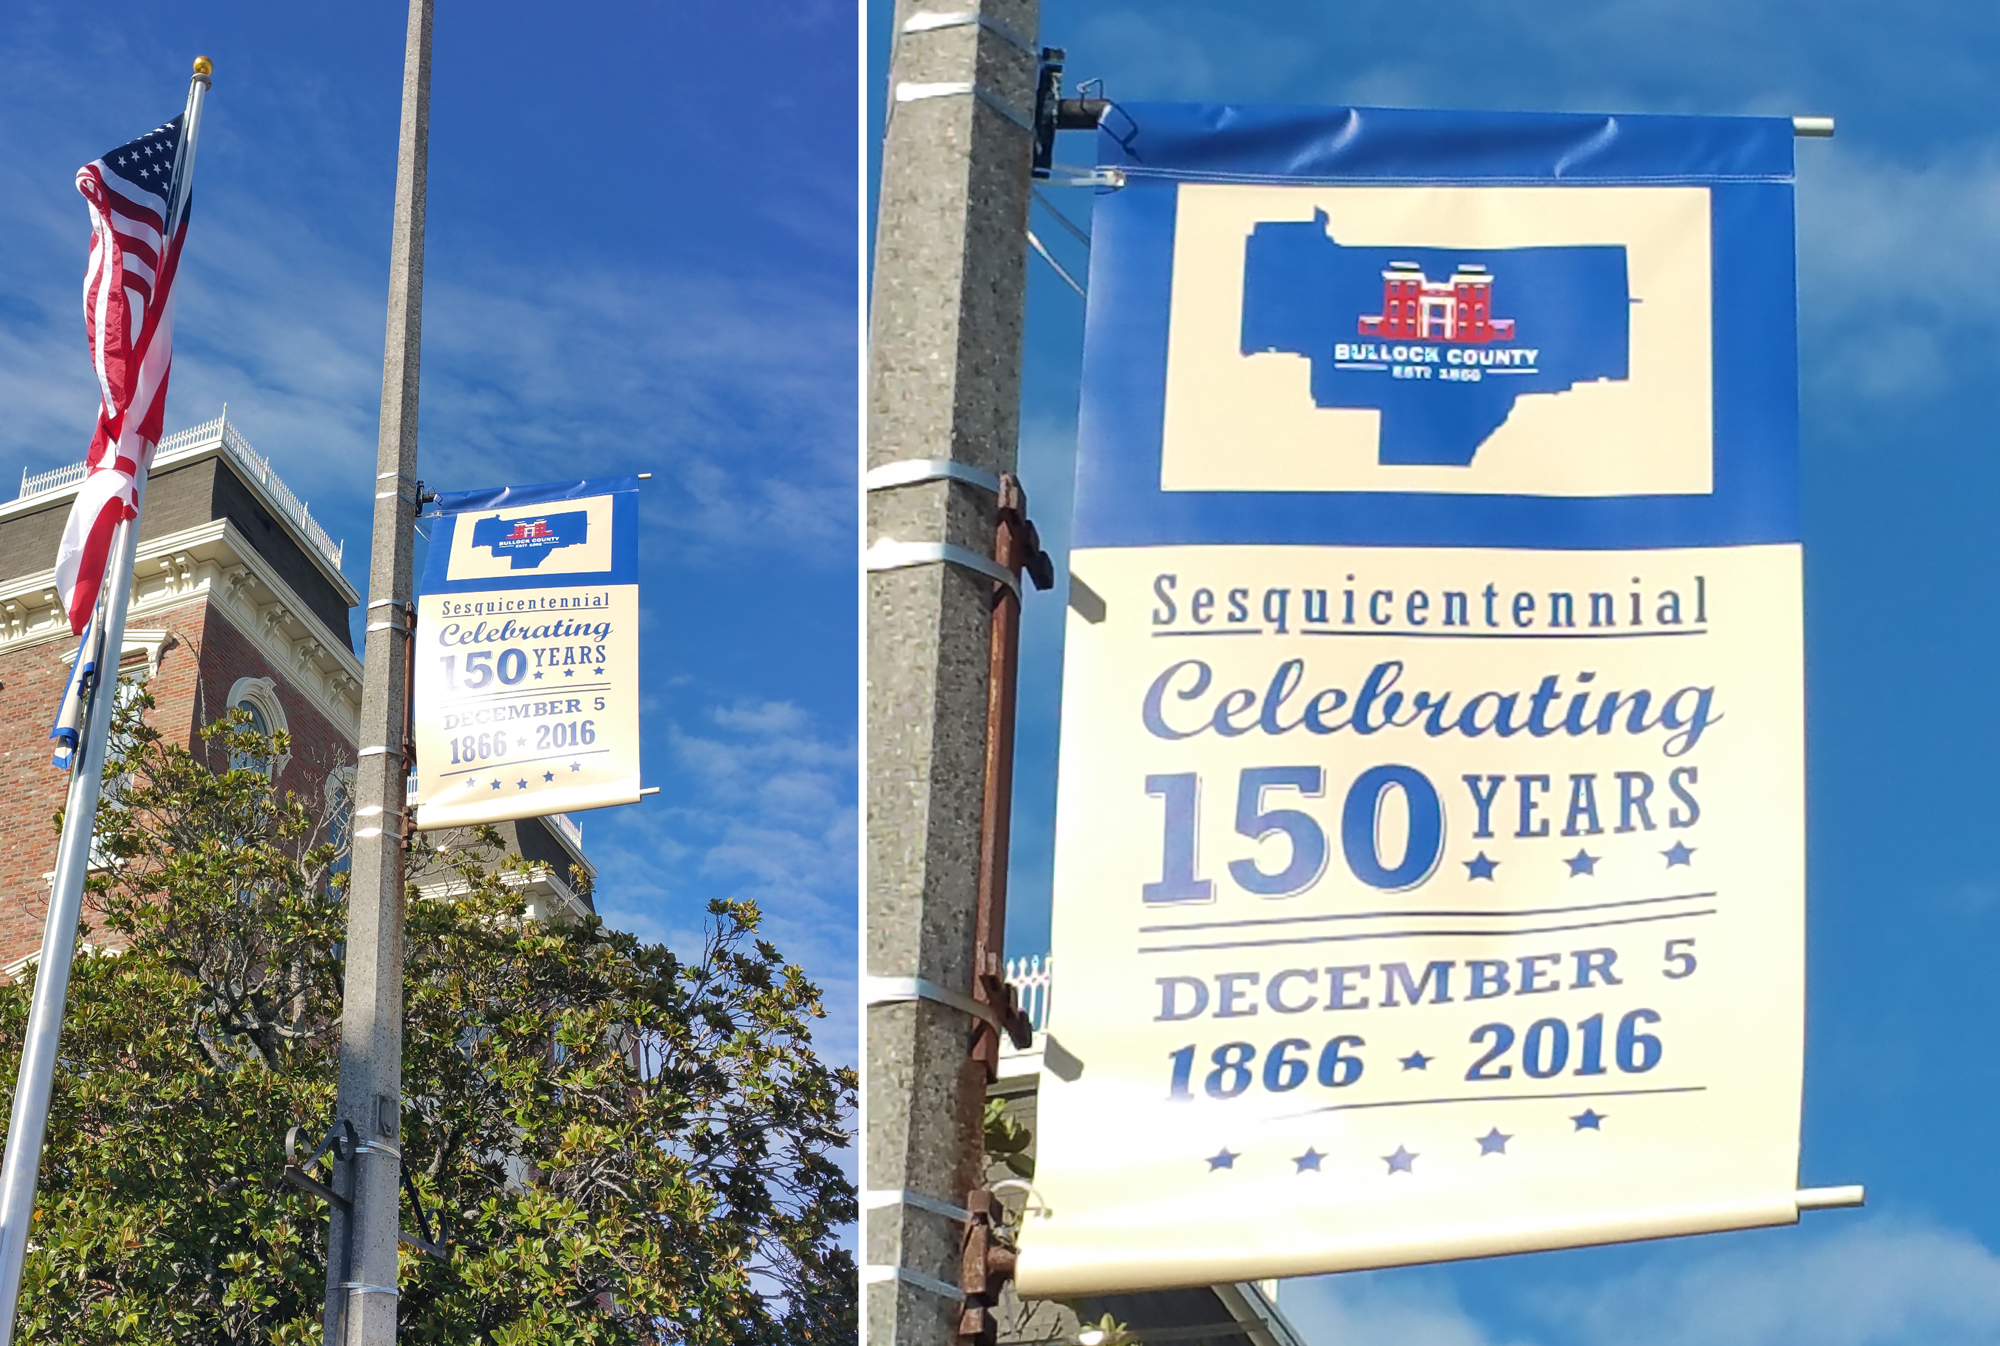 Light Pole Banners - Sesquicentennial Celebration     These are located throughout the city of Union Springs. The client asked that the flag design also be on these banners.